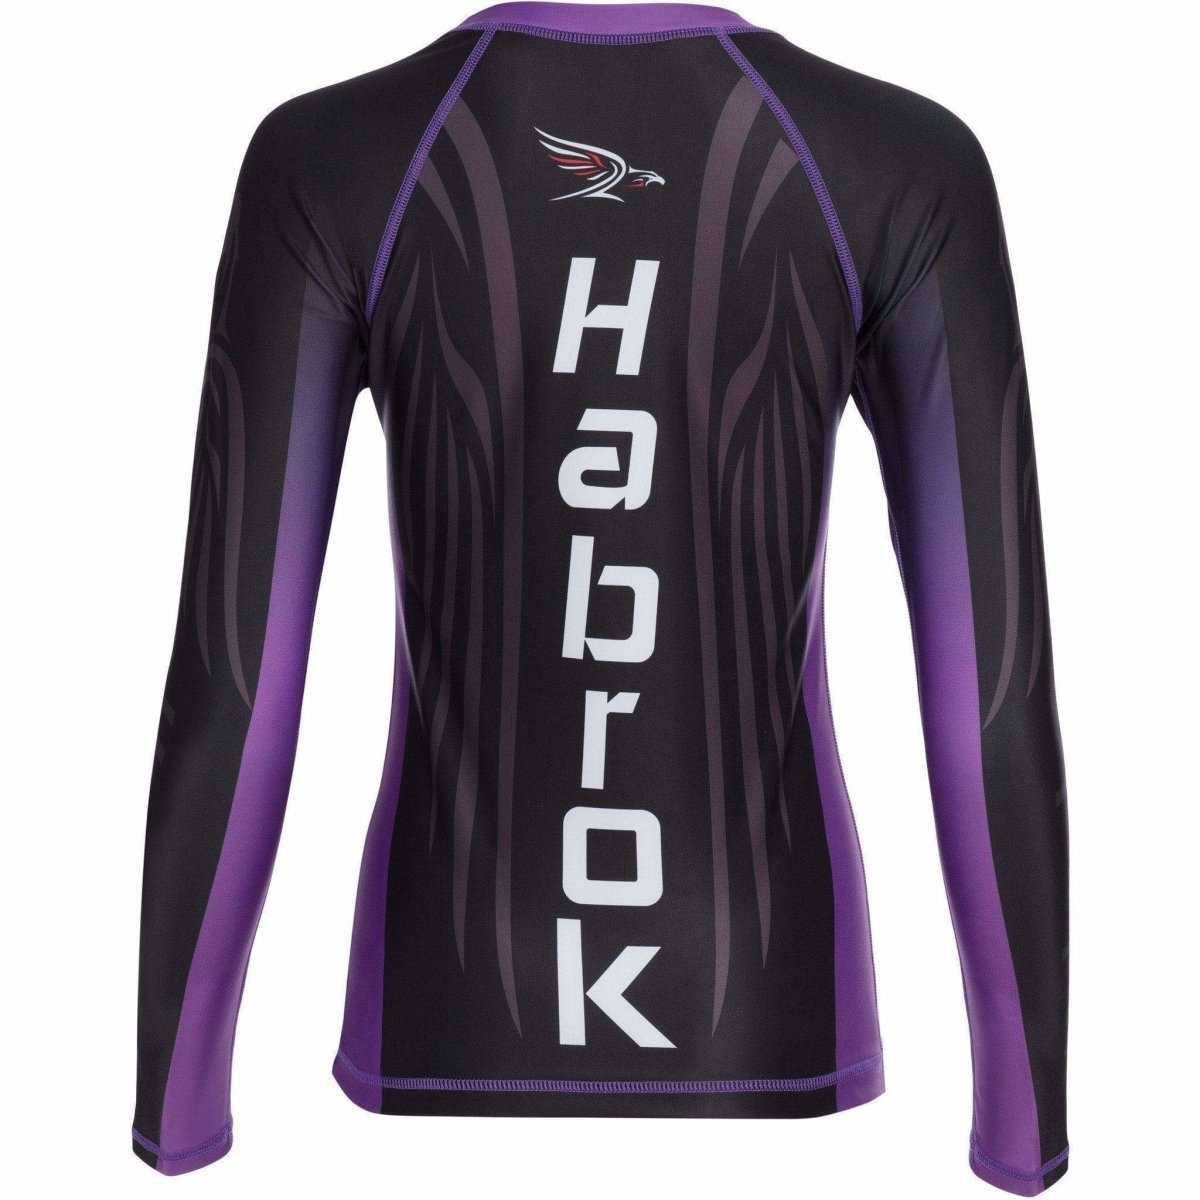 Habrok Rash Guard S / BLACK Elite Rash Guard Women  Elite Rash Guard | Women | Habrok